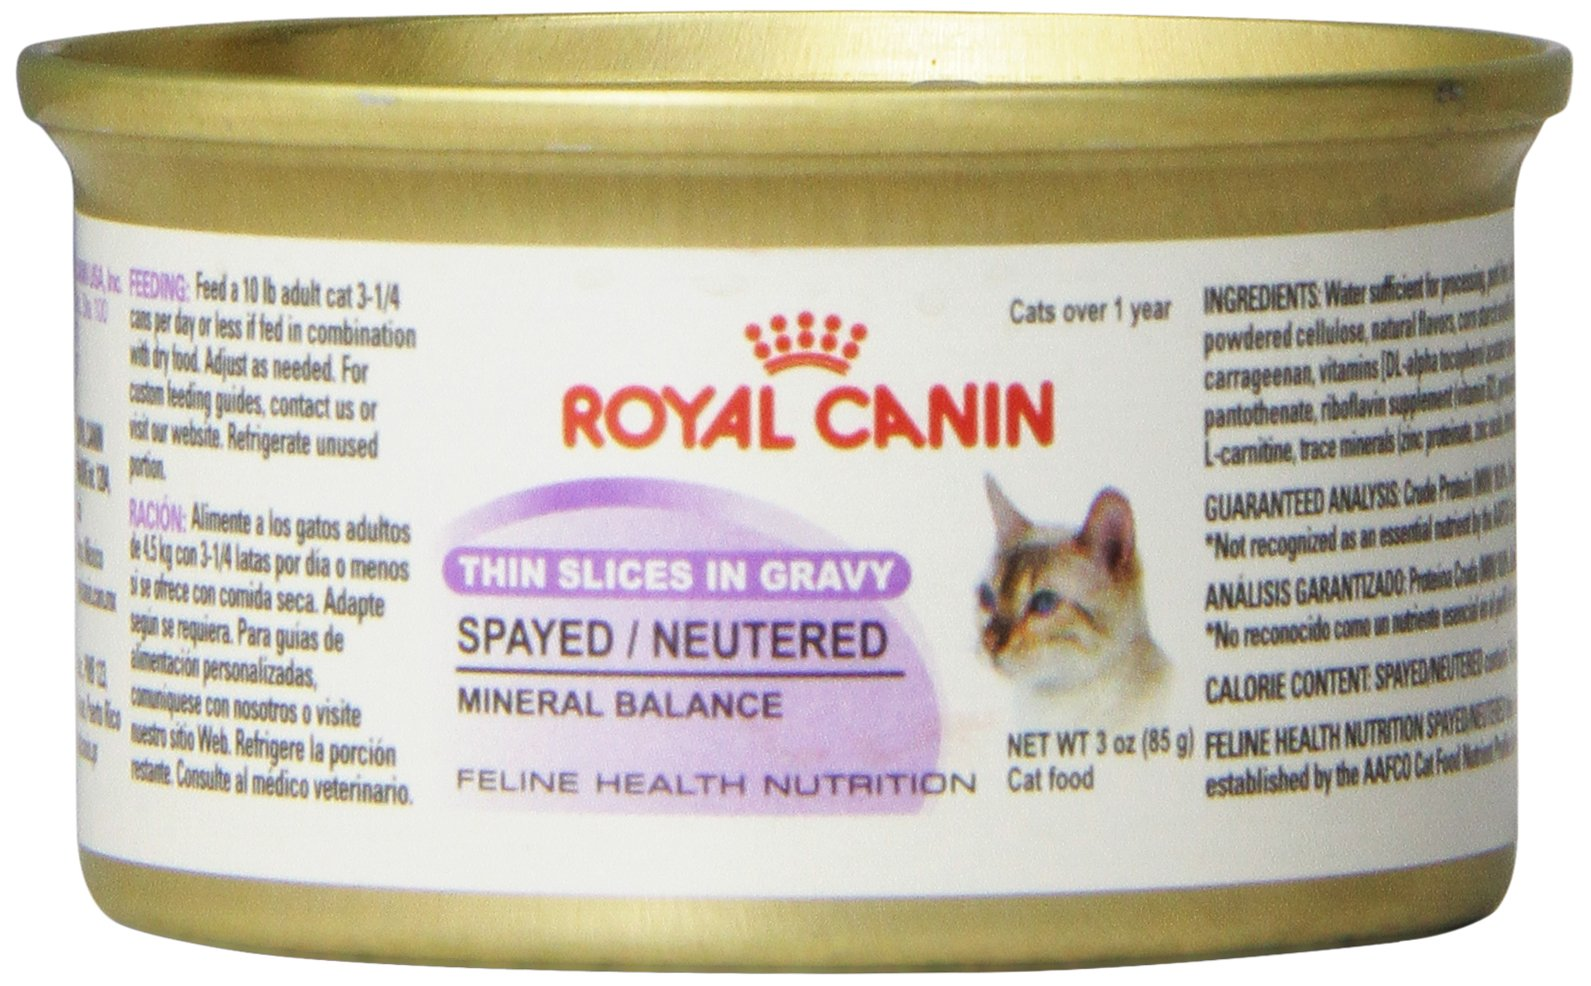 Royal Canin Spayed/Neutered Canned Cat Food, 3-Ounce pack of 24